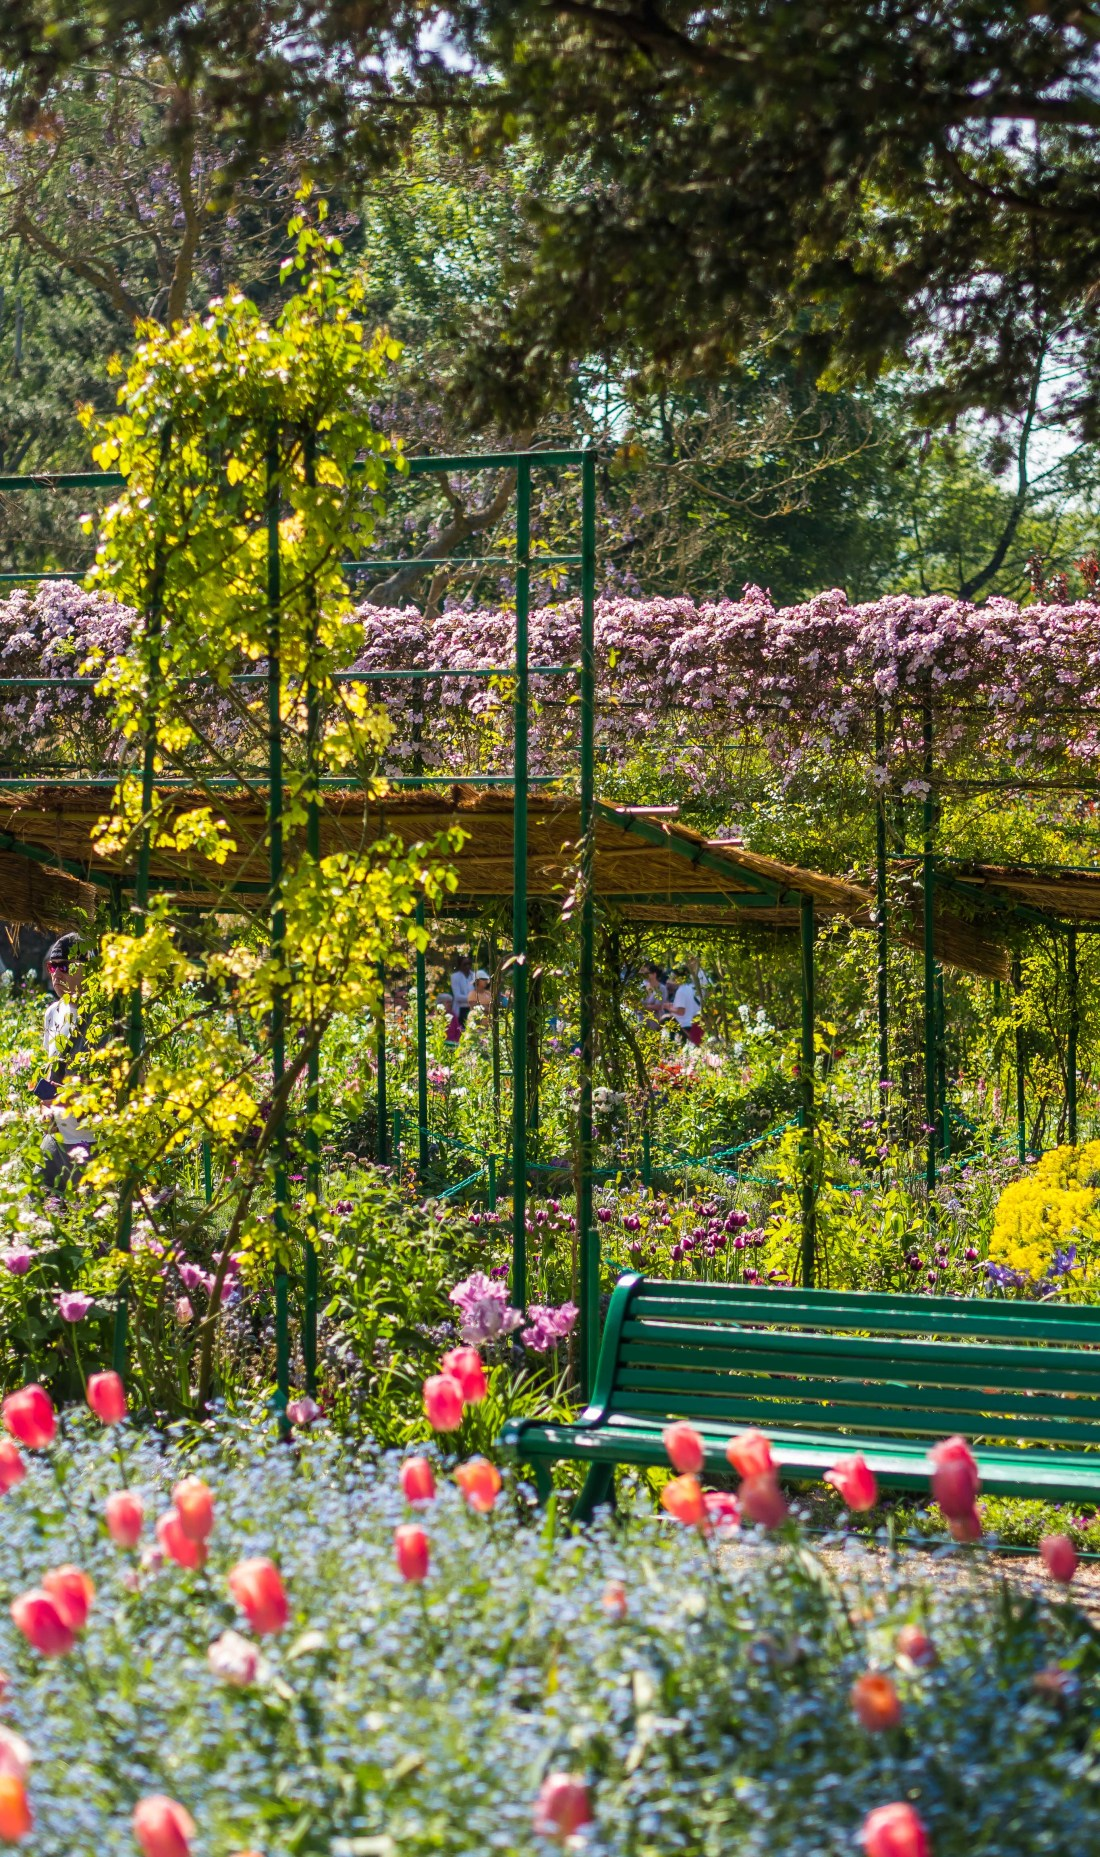 Jordan Taylor C - An Insider's Guide to Giverny, giverny, travel, insider's guide, insiders guide to giverny, paris, paris france, france travel, giverny travel, guide to giverny, paris day trip, giverny day trip